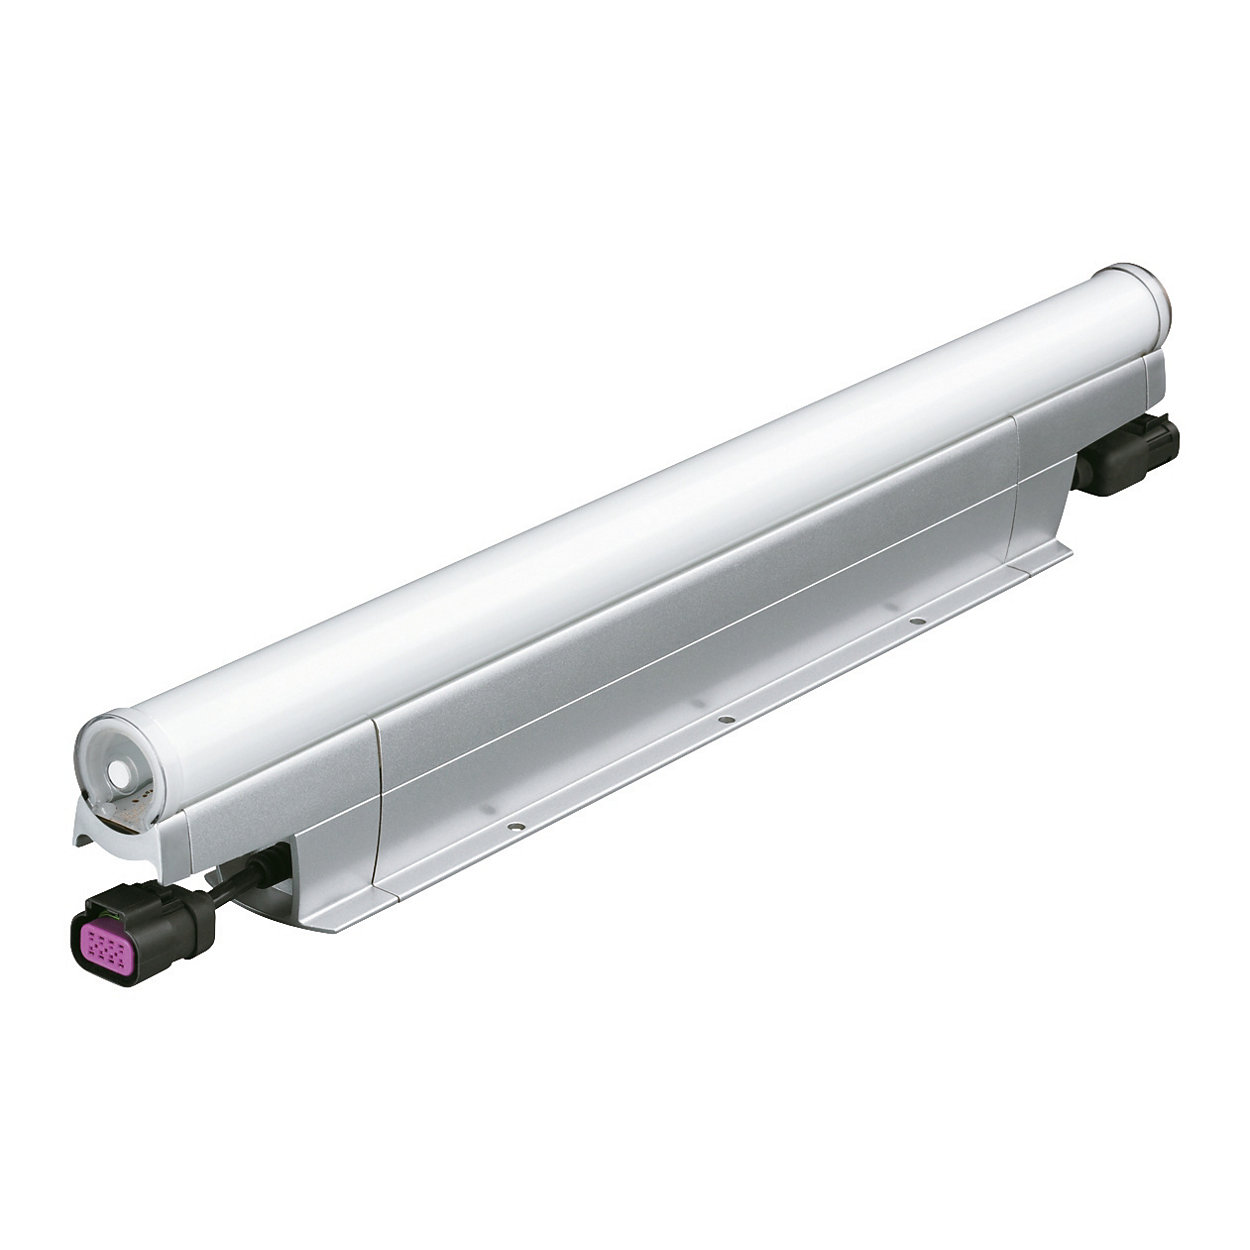 iColor Accent MX Powercore – Direct zichtbare, lineaire LED-armatuur met nauwkeurige resolutieregeling.